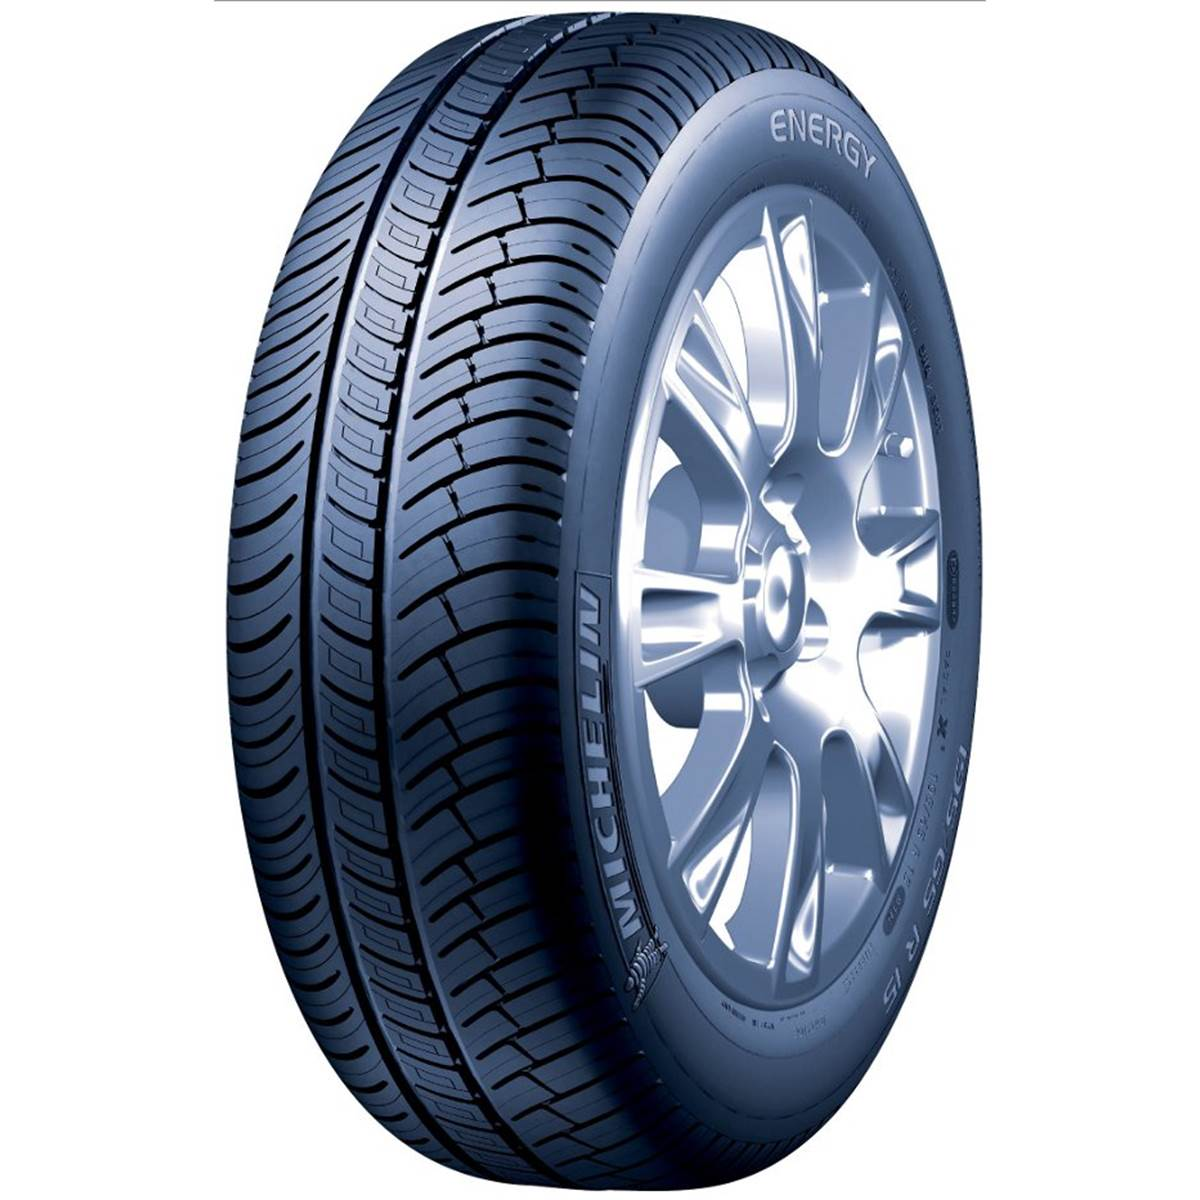 Pneu Michelin 165/60R14 75T Energy E3B1